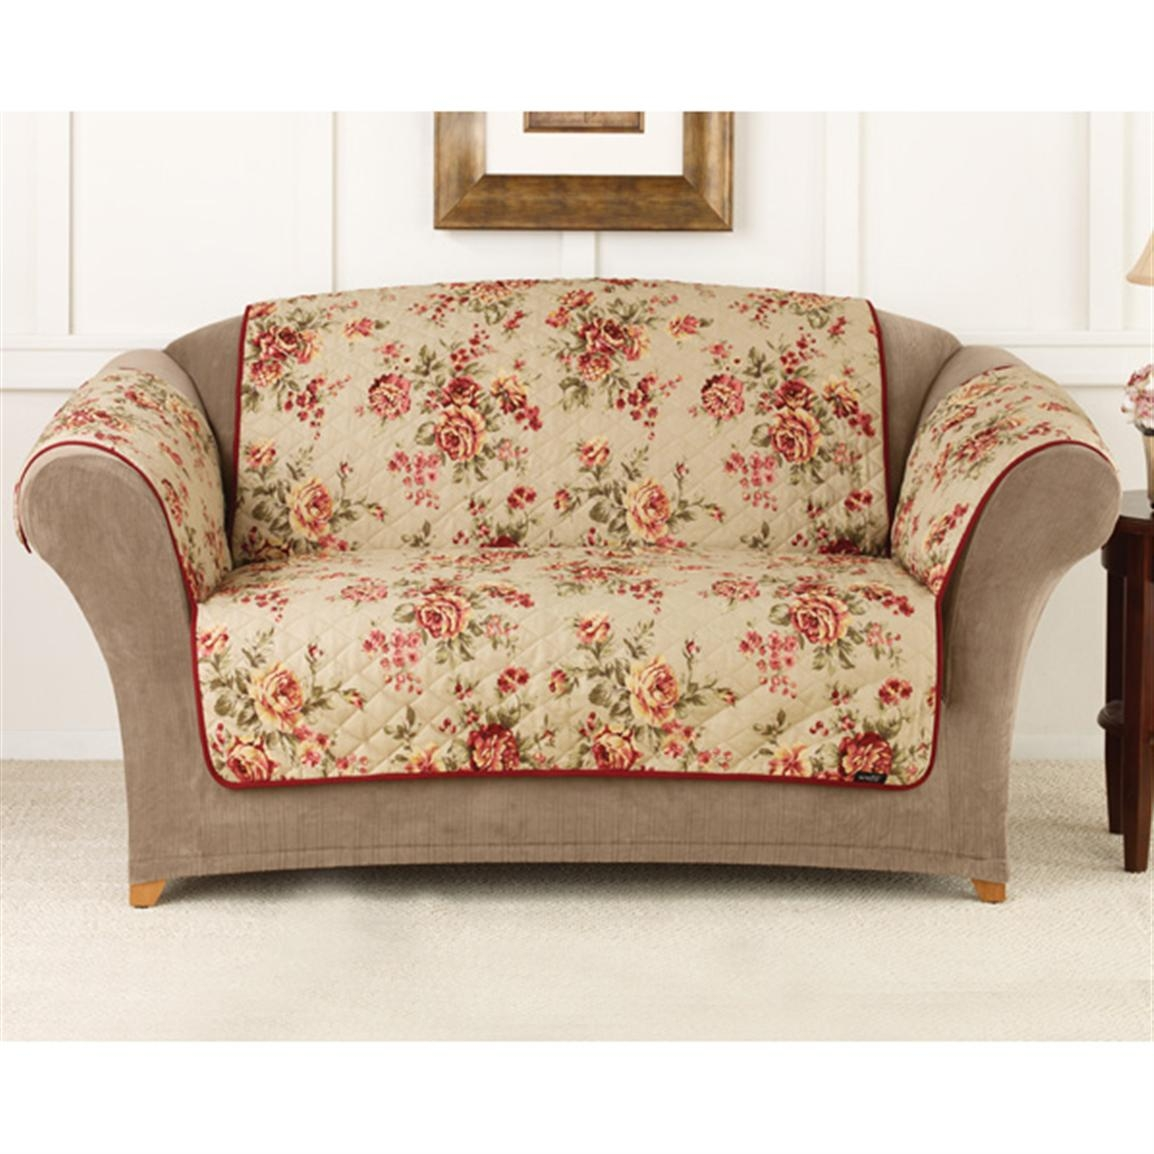 Sure Fit Lexington Floral Sofa Pet Cover 292857 Furniture For Floral Sofas And Chairs (Image 15 of 15)